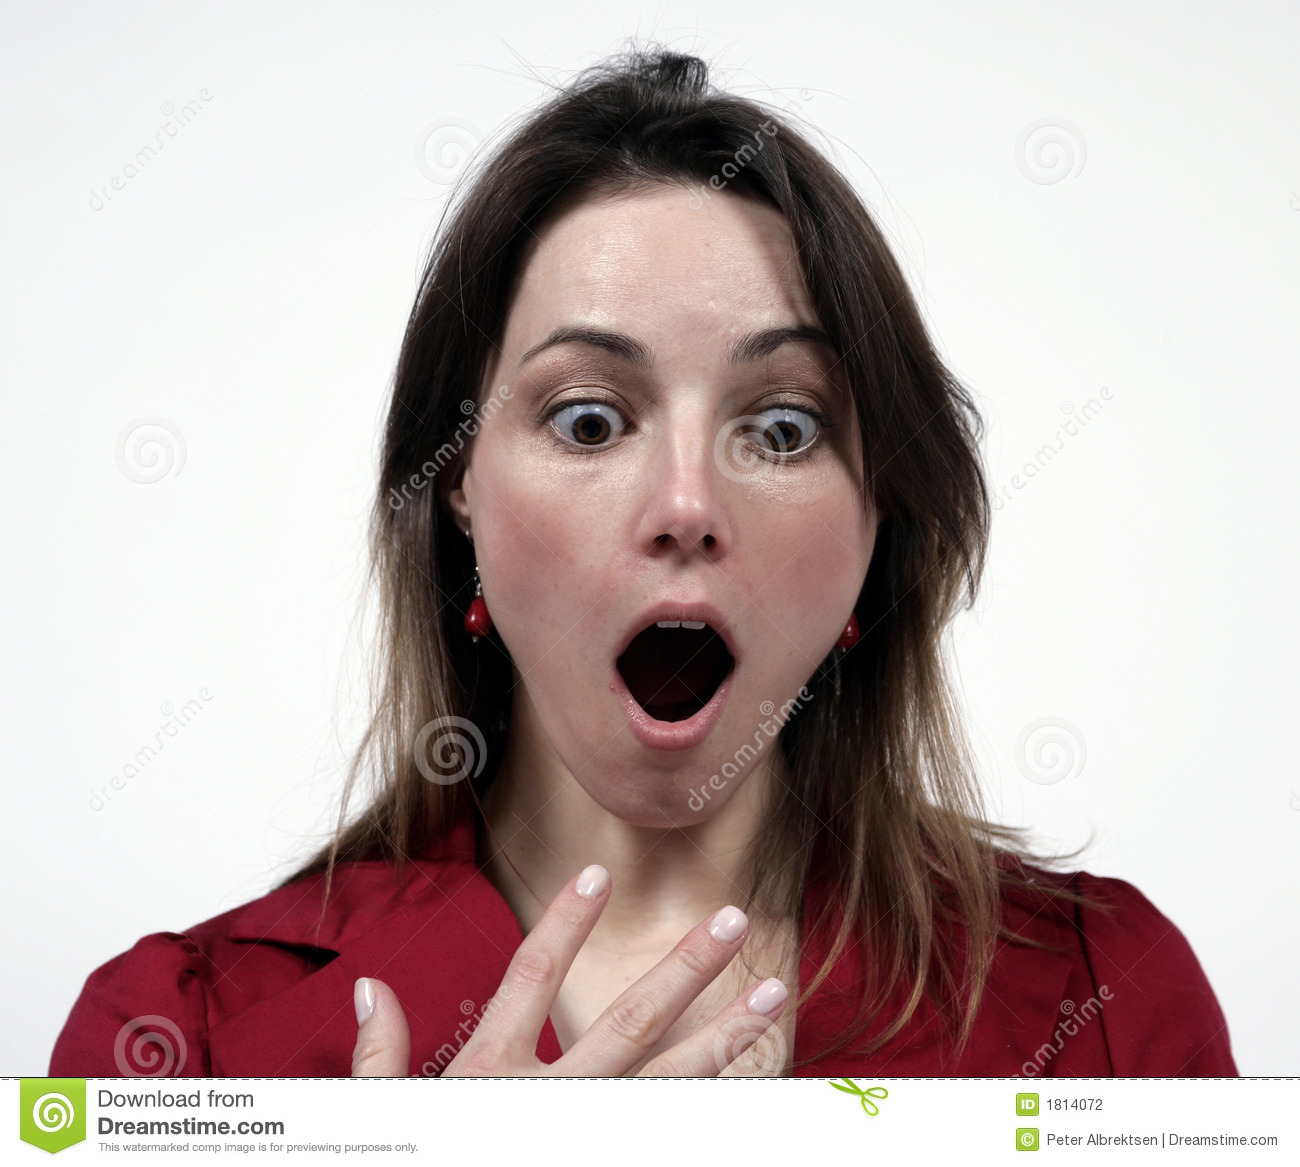 Share girl with mouth open